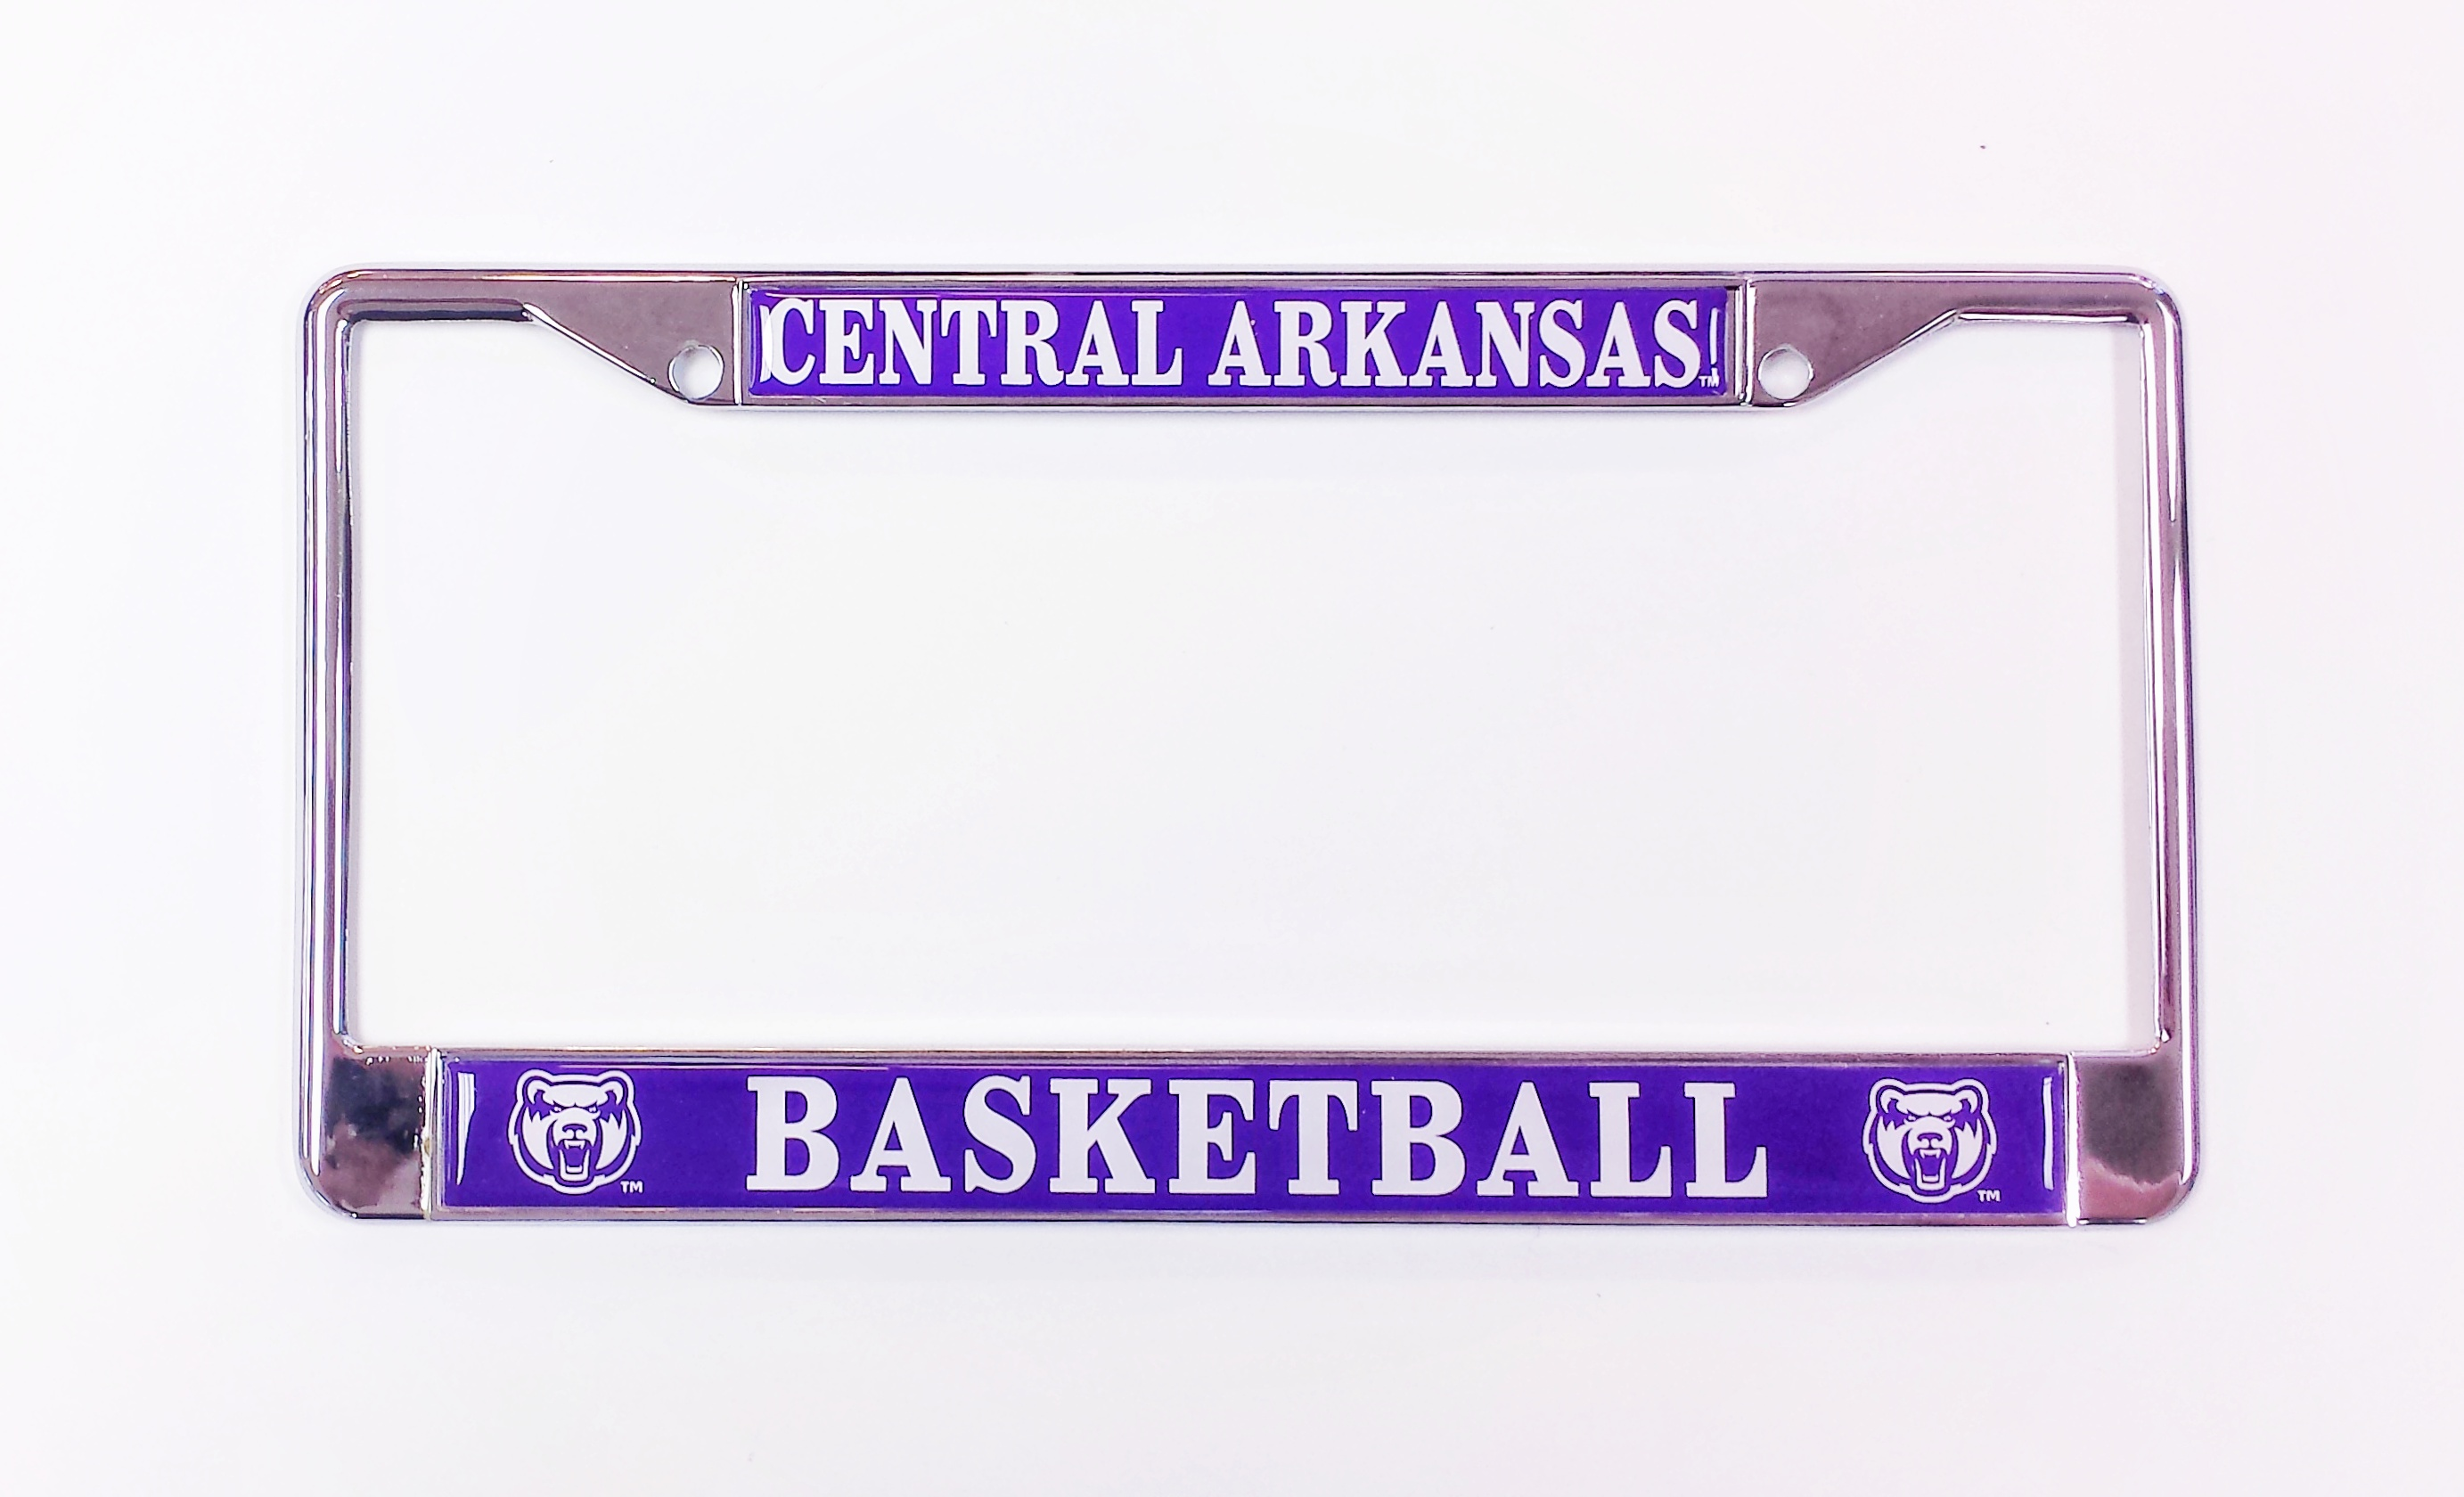 The UCA Bookstore: Tailgating - Auto Accessories - License Plates/Frames